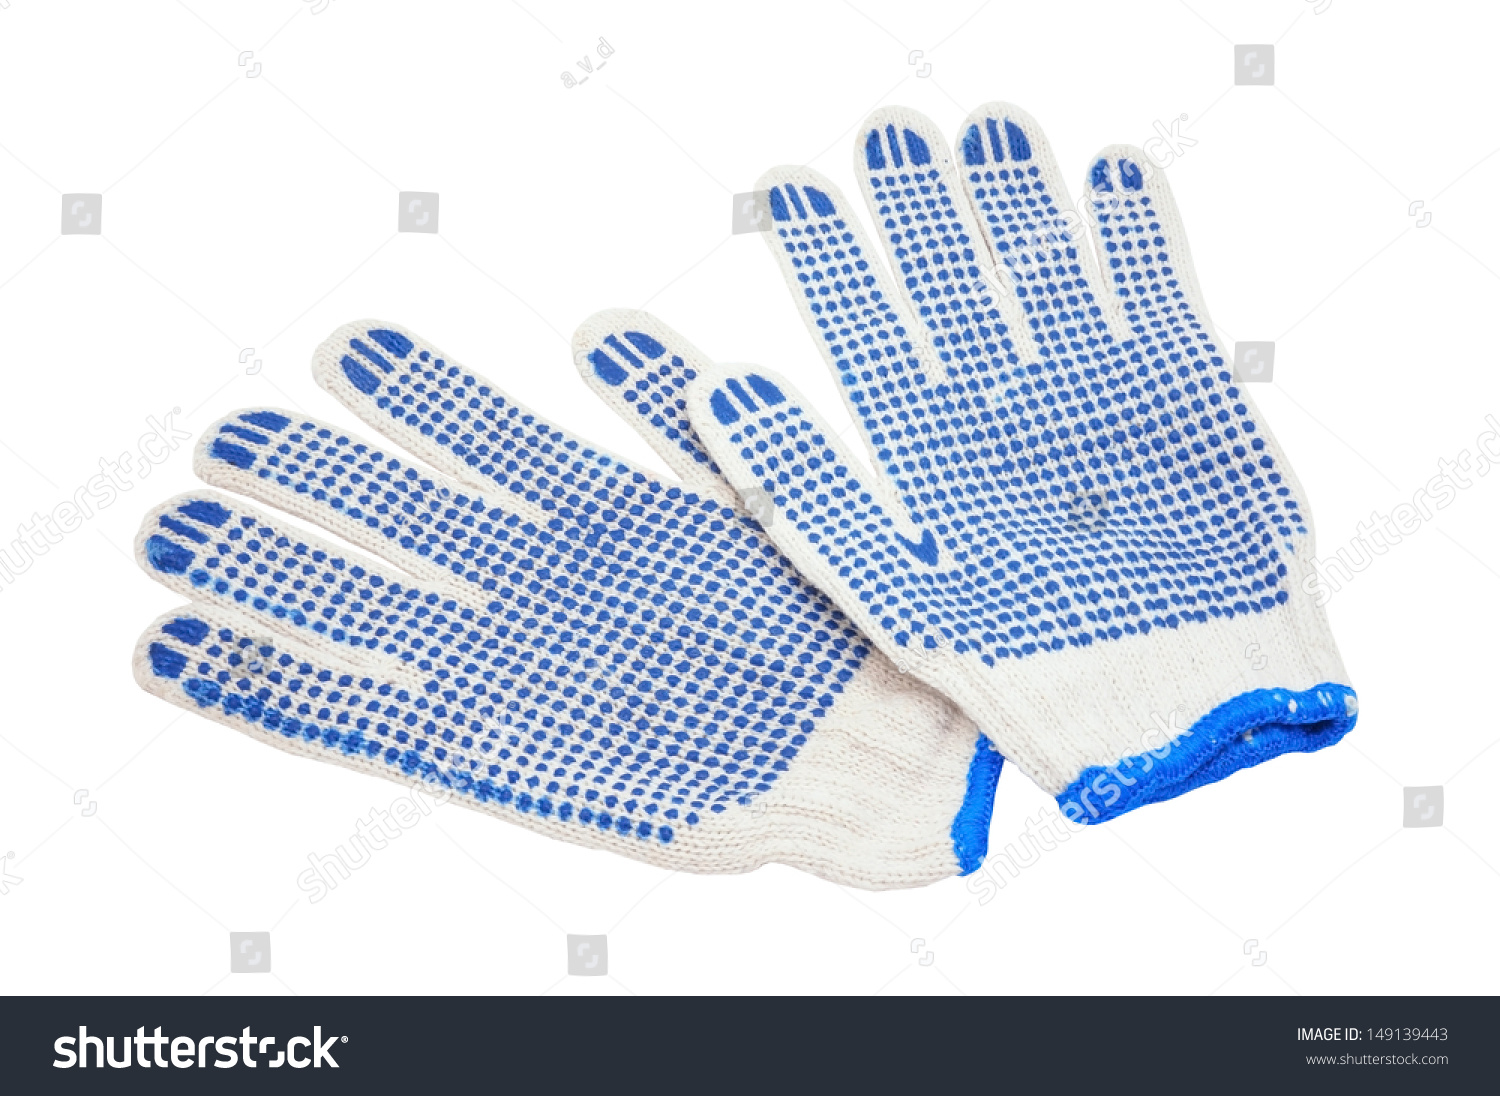 Gauntlet Gloves On White Background Stock Photo (Edit Now